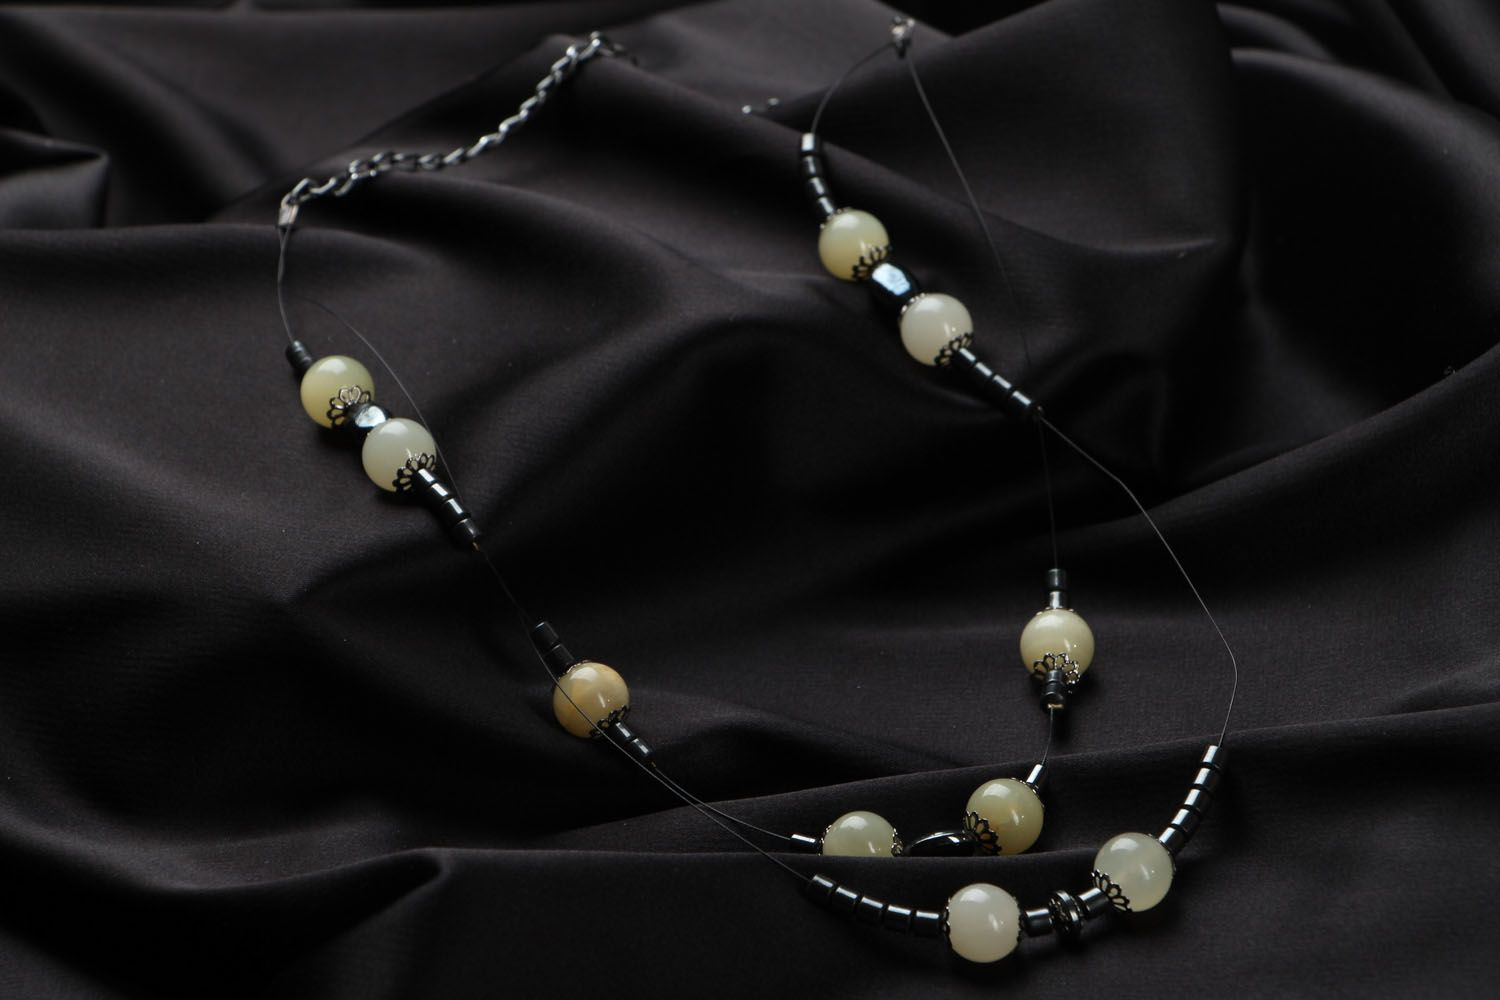 Necklace made of onyx and hematite photo 2